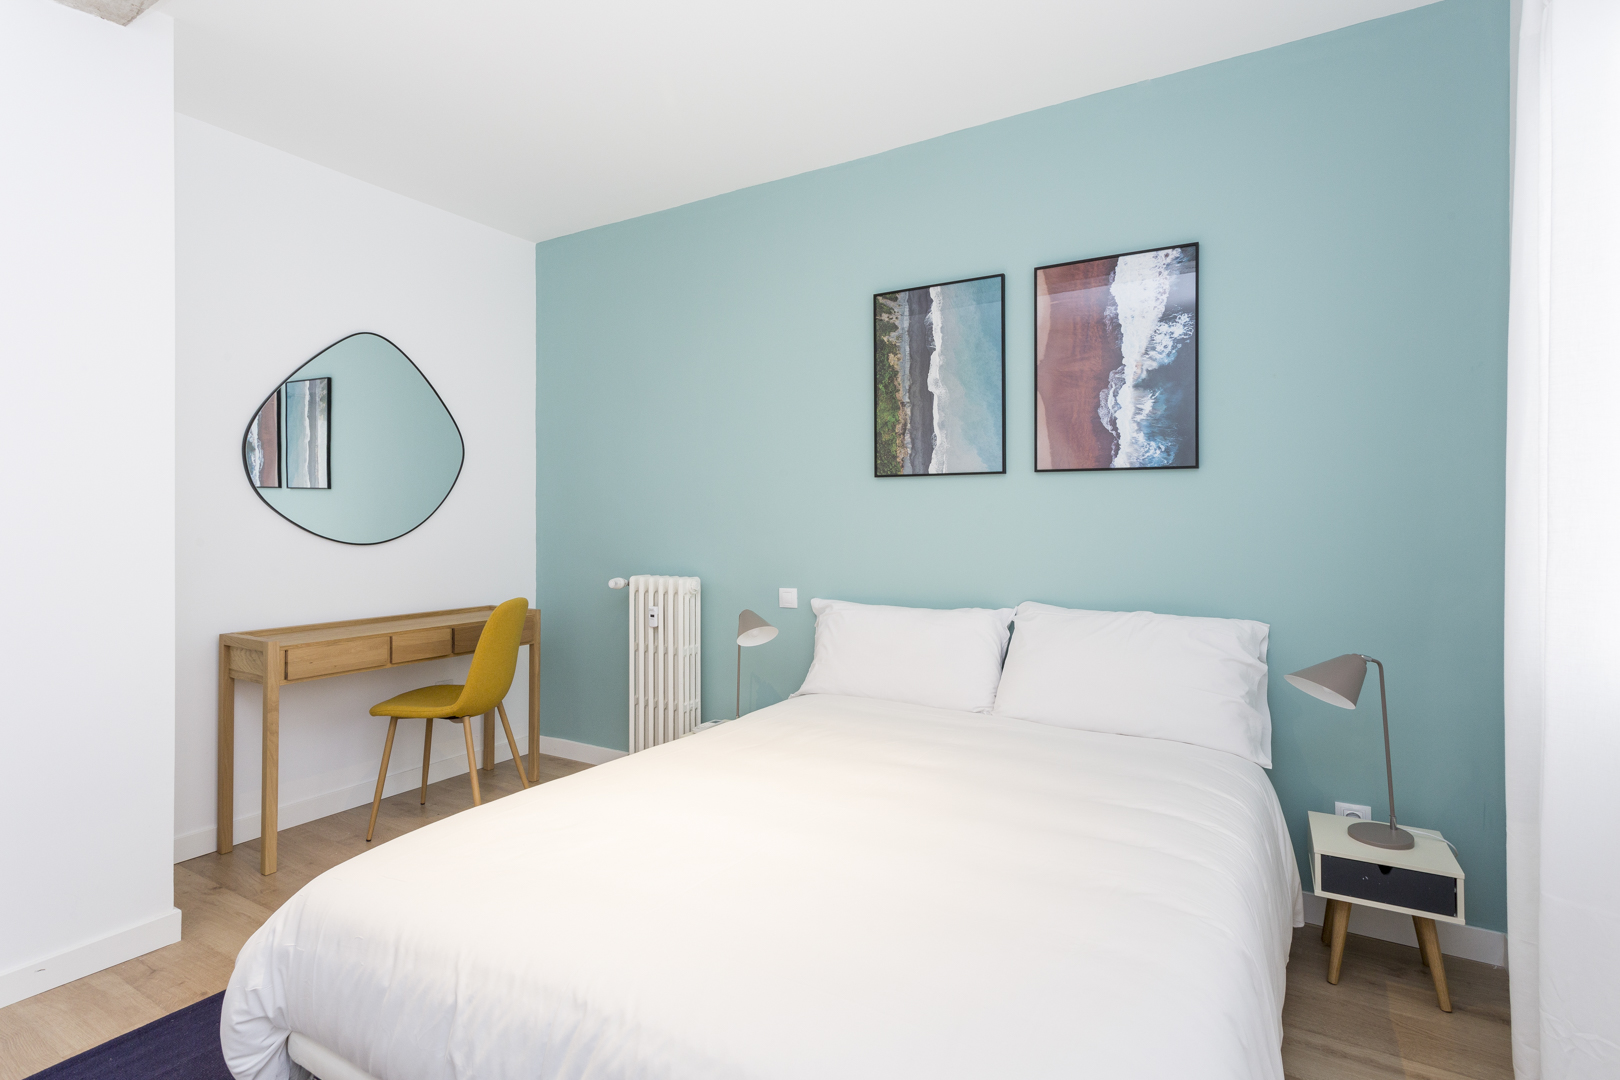 Bed at Calle Gravina Apartment, Centre, Madrid